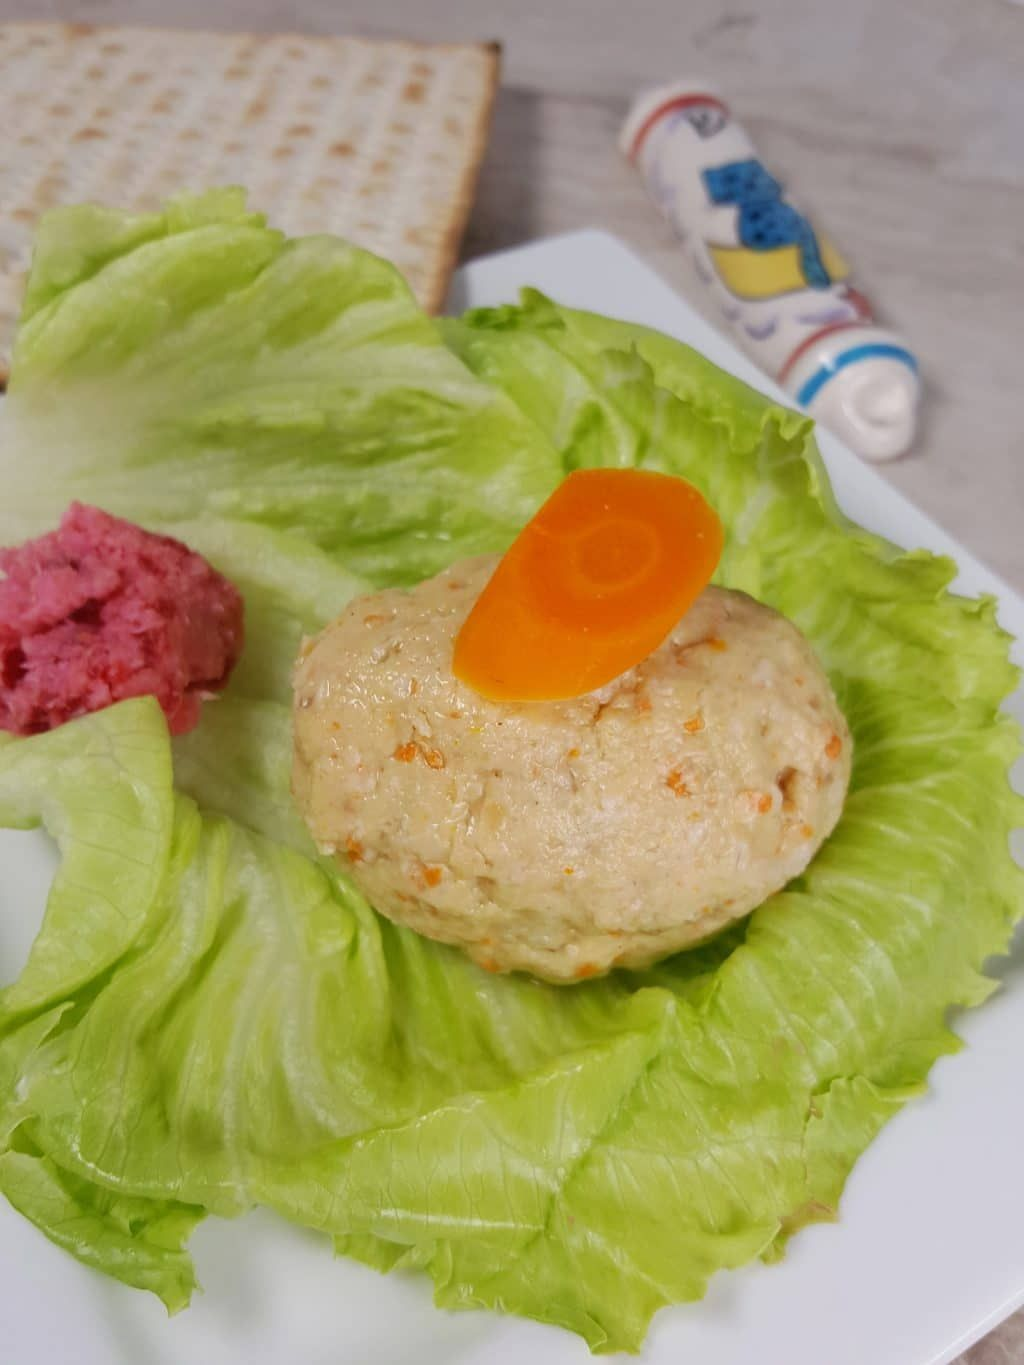 Pressure Cooker Gefilte Fish In Jelled Broth Image Gefilte Fish Recipe Jewish Recipes International Recipes